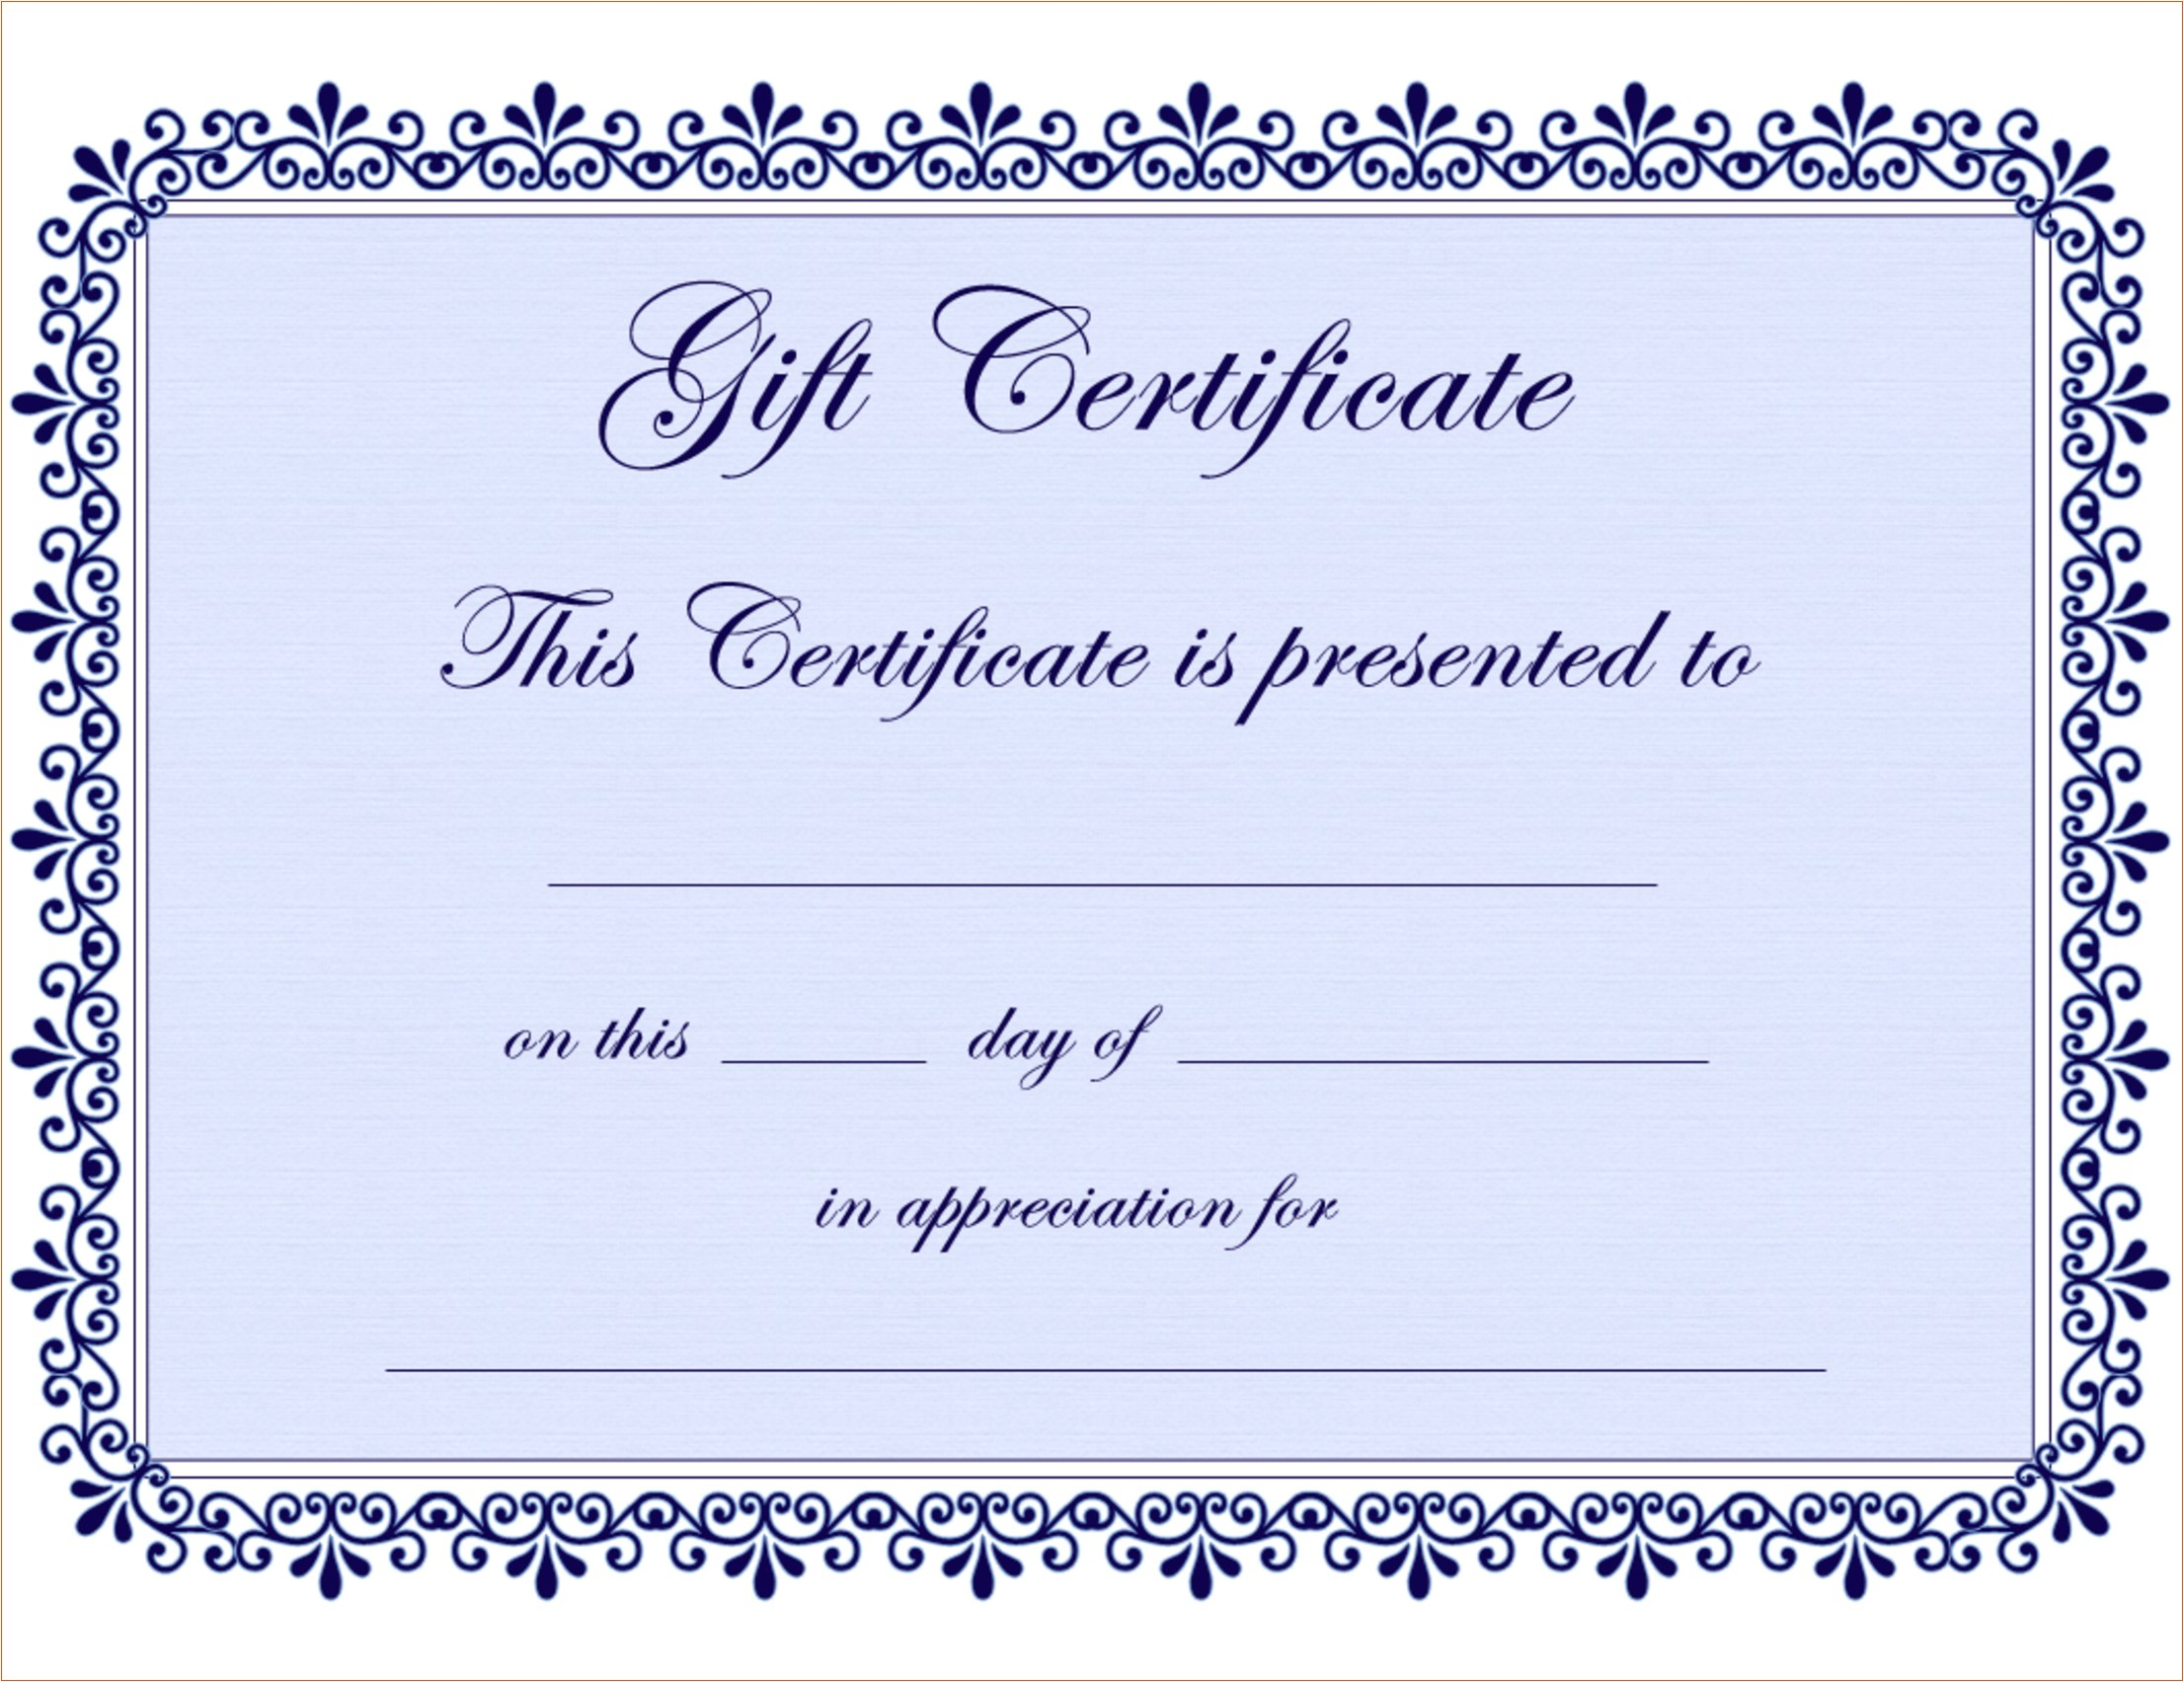 adams gift certificate template download